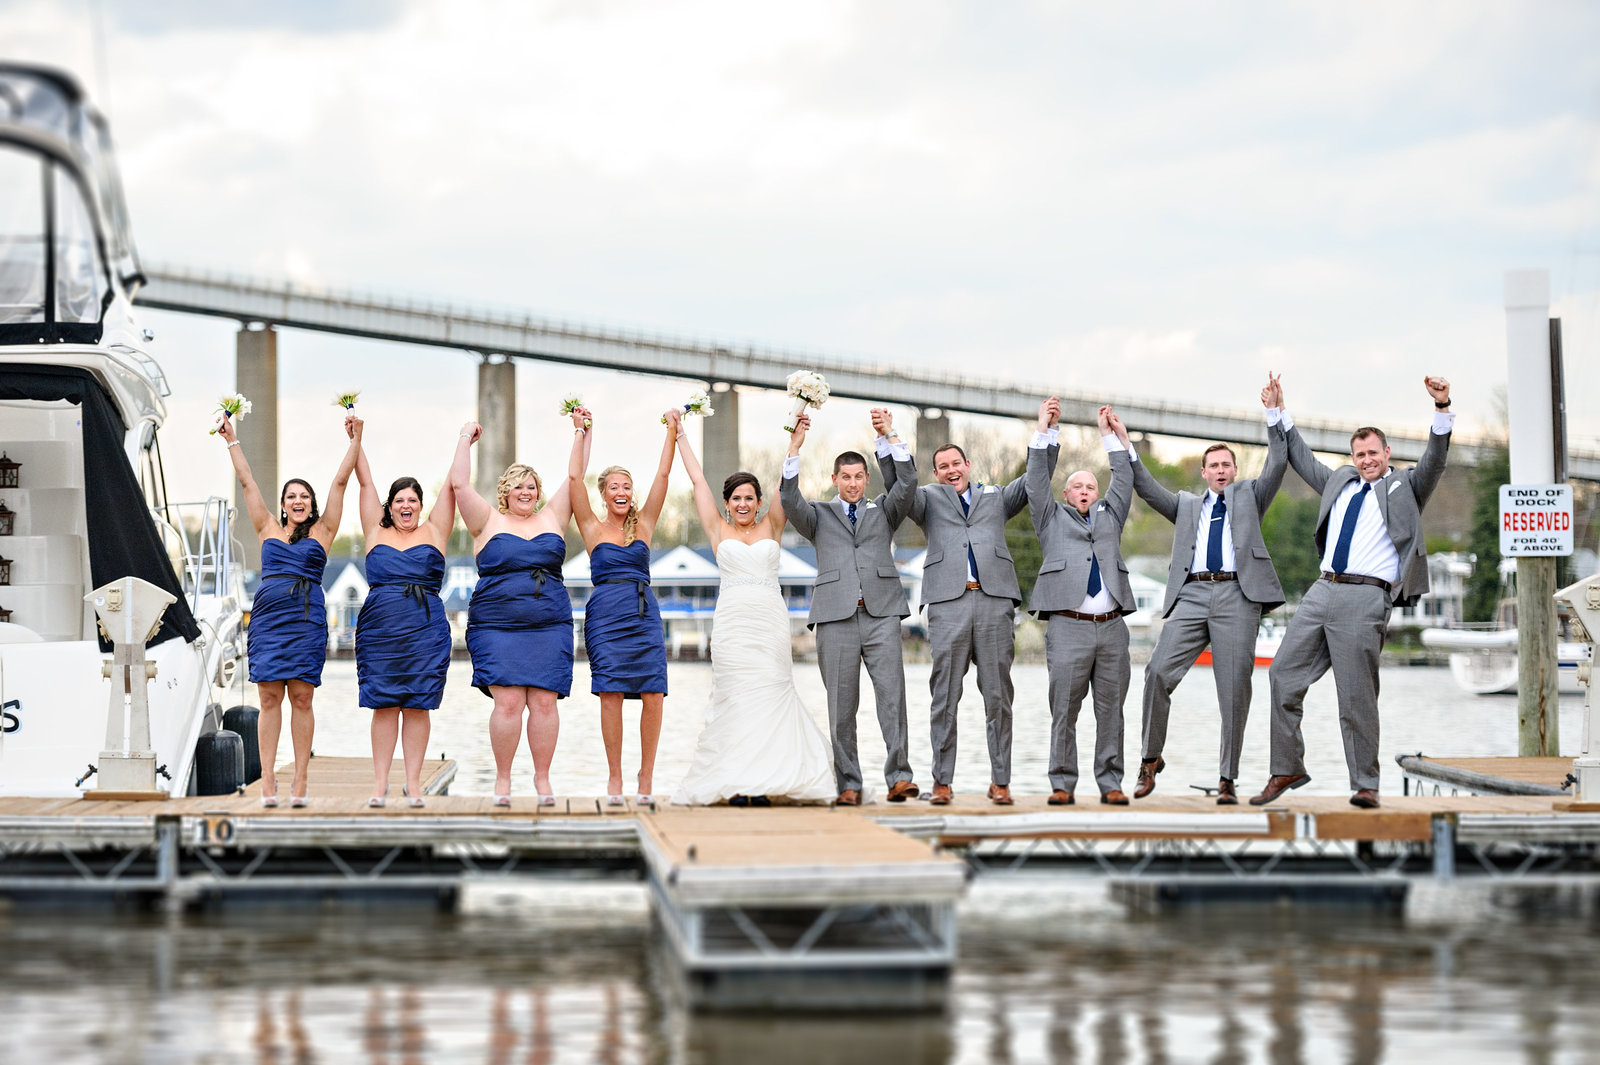 A happy wedding party cheer for joy on the docks outside of the Chesapeake Inn Restaurant.